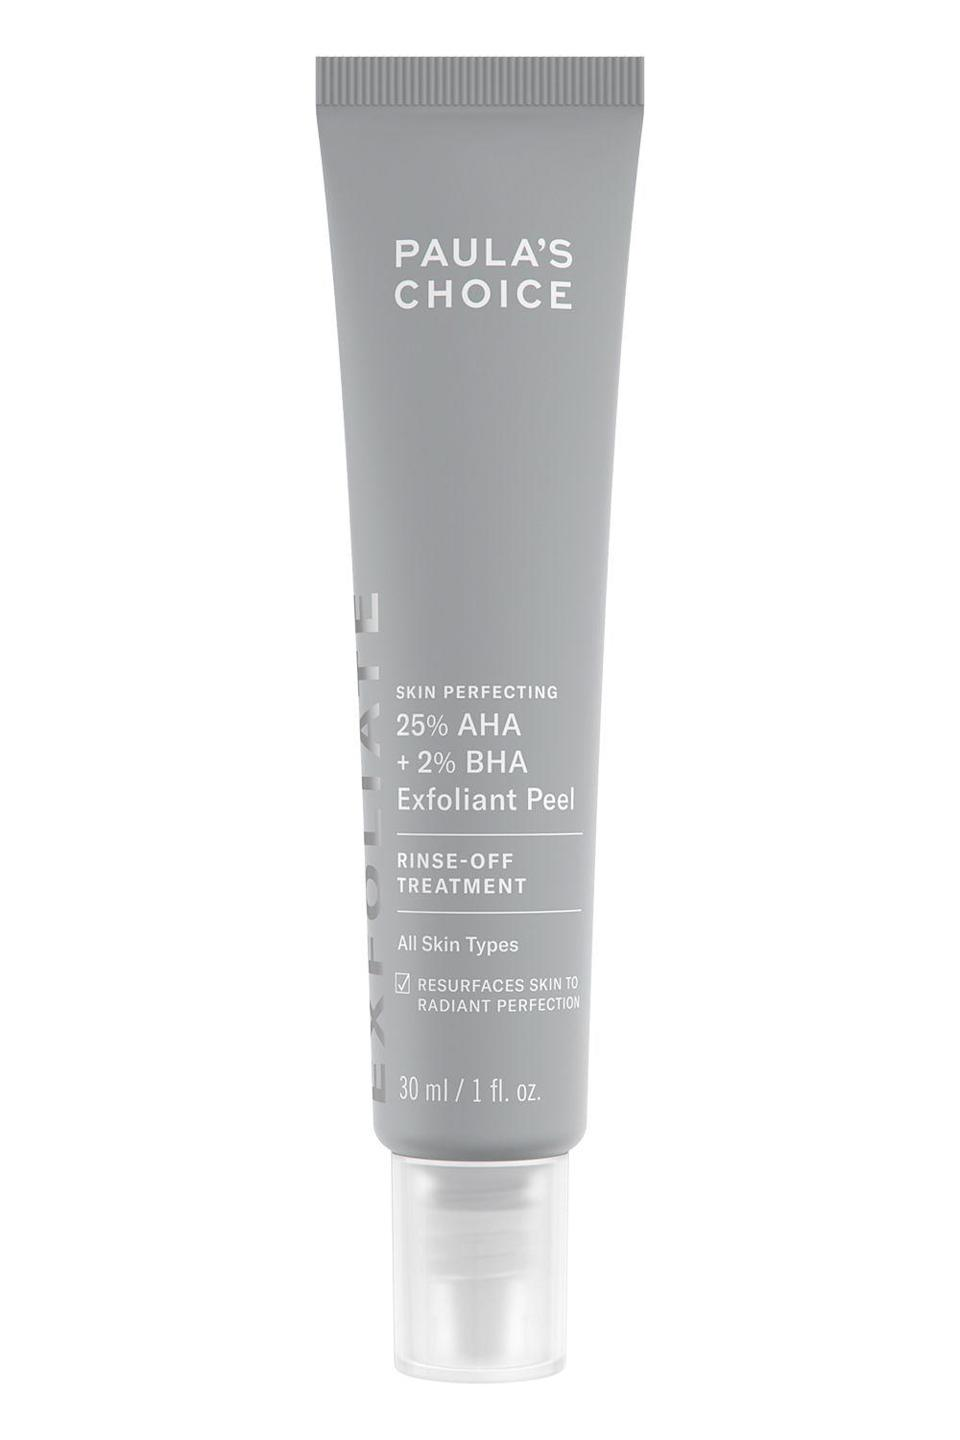 """<p><strong>Paula's Choice</strong></p><p>sephora.com</p><p><strong>$39.00</strong></p><p><a href=""""https://go.redirectingat.com?id=74968X1596630&url=https%3A%2F%2Fwww.sephora.com%2Fproduct%2Fpaula-s-choice-skin-perfecting-25-aha-2-bha-exfoliant-peel-P469528&sref=https%3A%2F%2Fwww.cosmopolitan.com%2Fstyle-beauty%2Fbeauty%2Fg30554130%2Fbest-at-home-face-peel%2F"""" rel=""""nofollow noopener"""" target=""""_blank"""" data-ylk=""""slk:Shop Now"""" class=""""link rapid-noclick-resp"""">Shop Now</a></p><p>I've been using this chemical peel at home once a week for a few months now and am loving the results. Inside the tube: a blend of AHAs (including lactic, mandalic, and <a href=""""https://www.cosmopolitan.com/style-beauty/beauty/g32909773/glycolic-acid-serum/"""" rel=""""nofollow noopener"""" target=""""_blank"""" data-ylk=""""slk:glycolic acids"""" class=""""link rapid-noclick-resp"""">glycolic acids</a>) and salicylic acid to <strong>shrink pores and give your skin a smoother, softer </strong><strong>feel</strong>.</p>"""